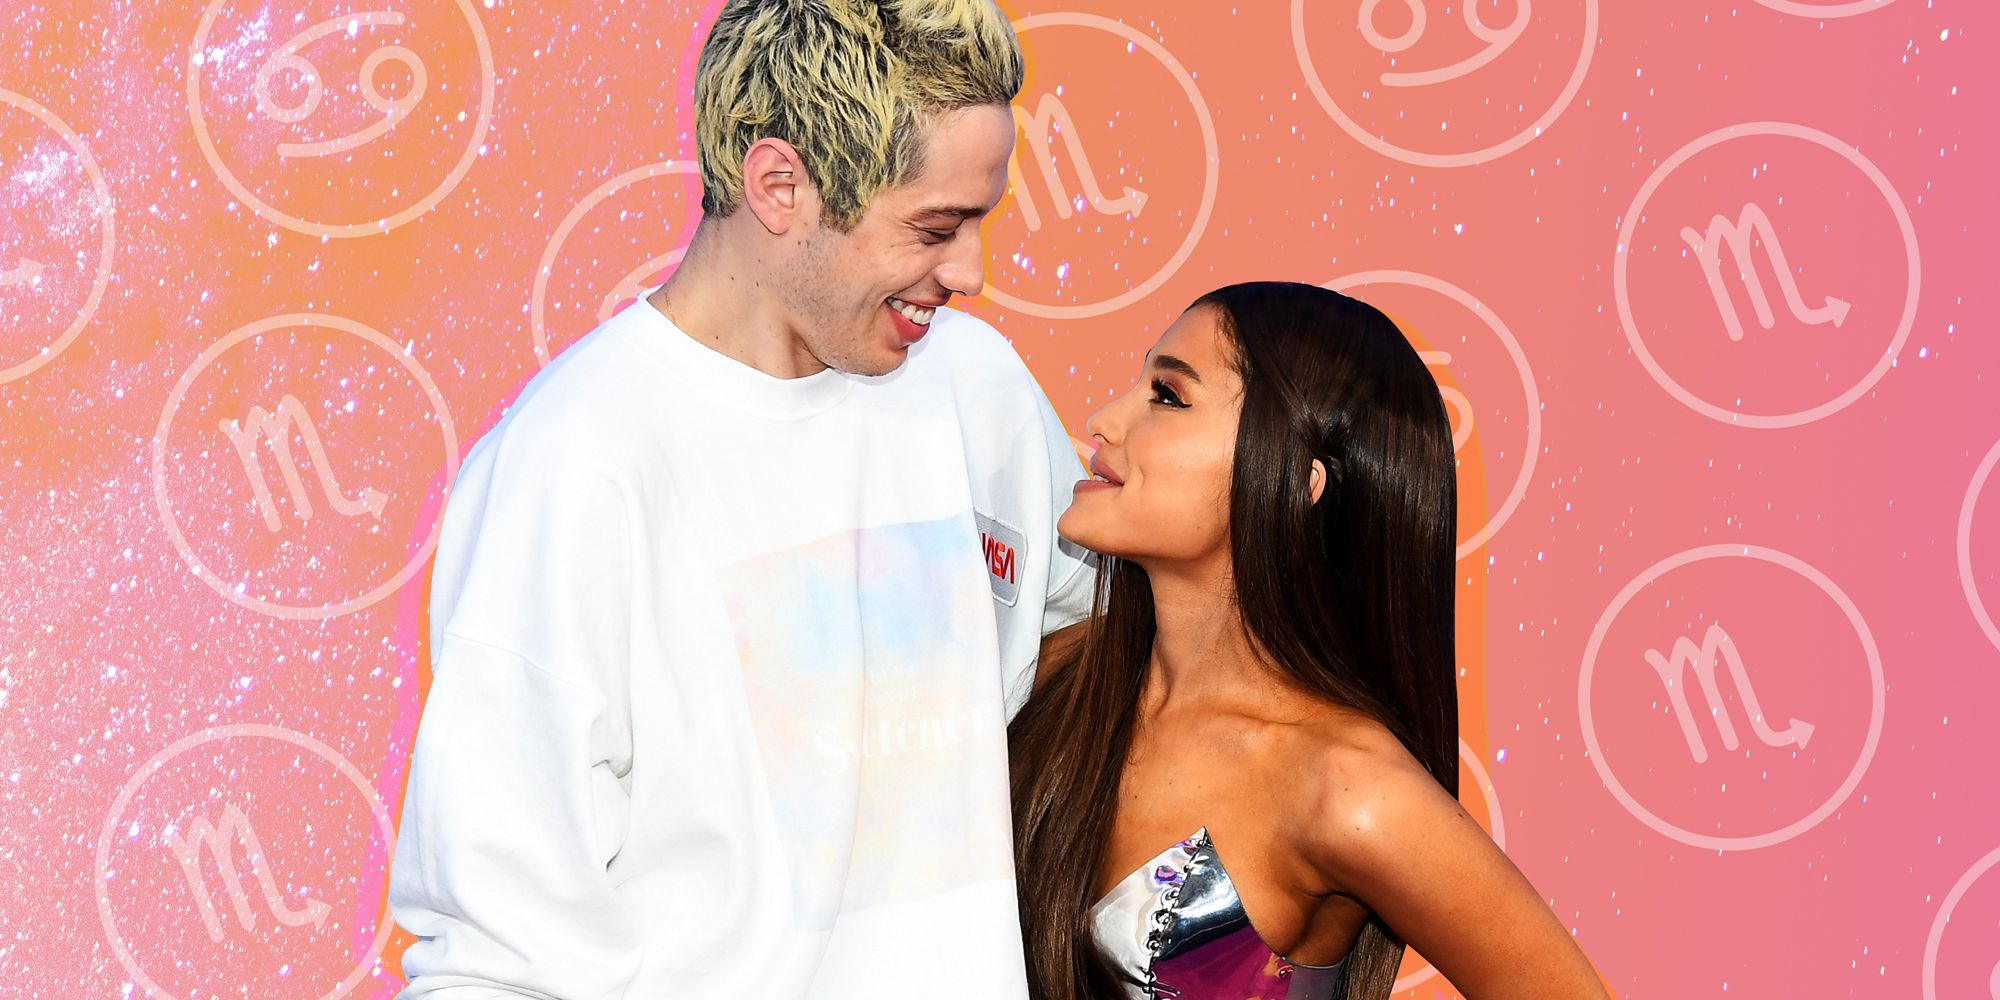 Ariana Grande and Pete Davidson's Love Compatibility - Astrological